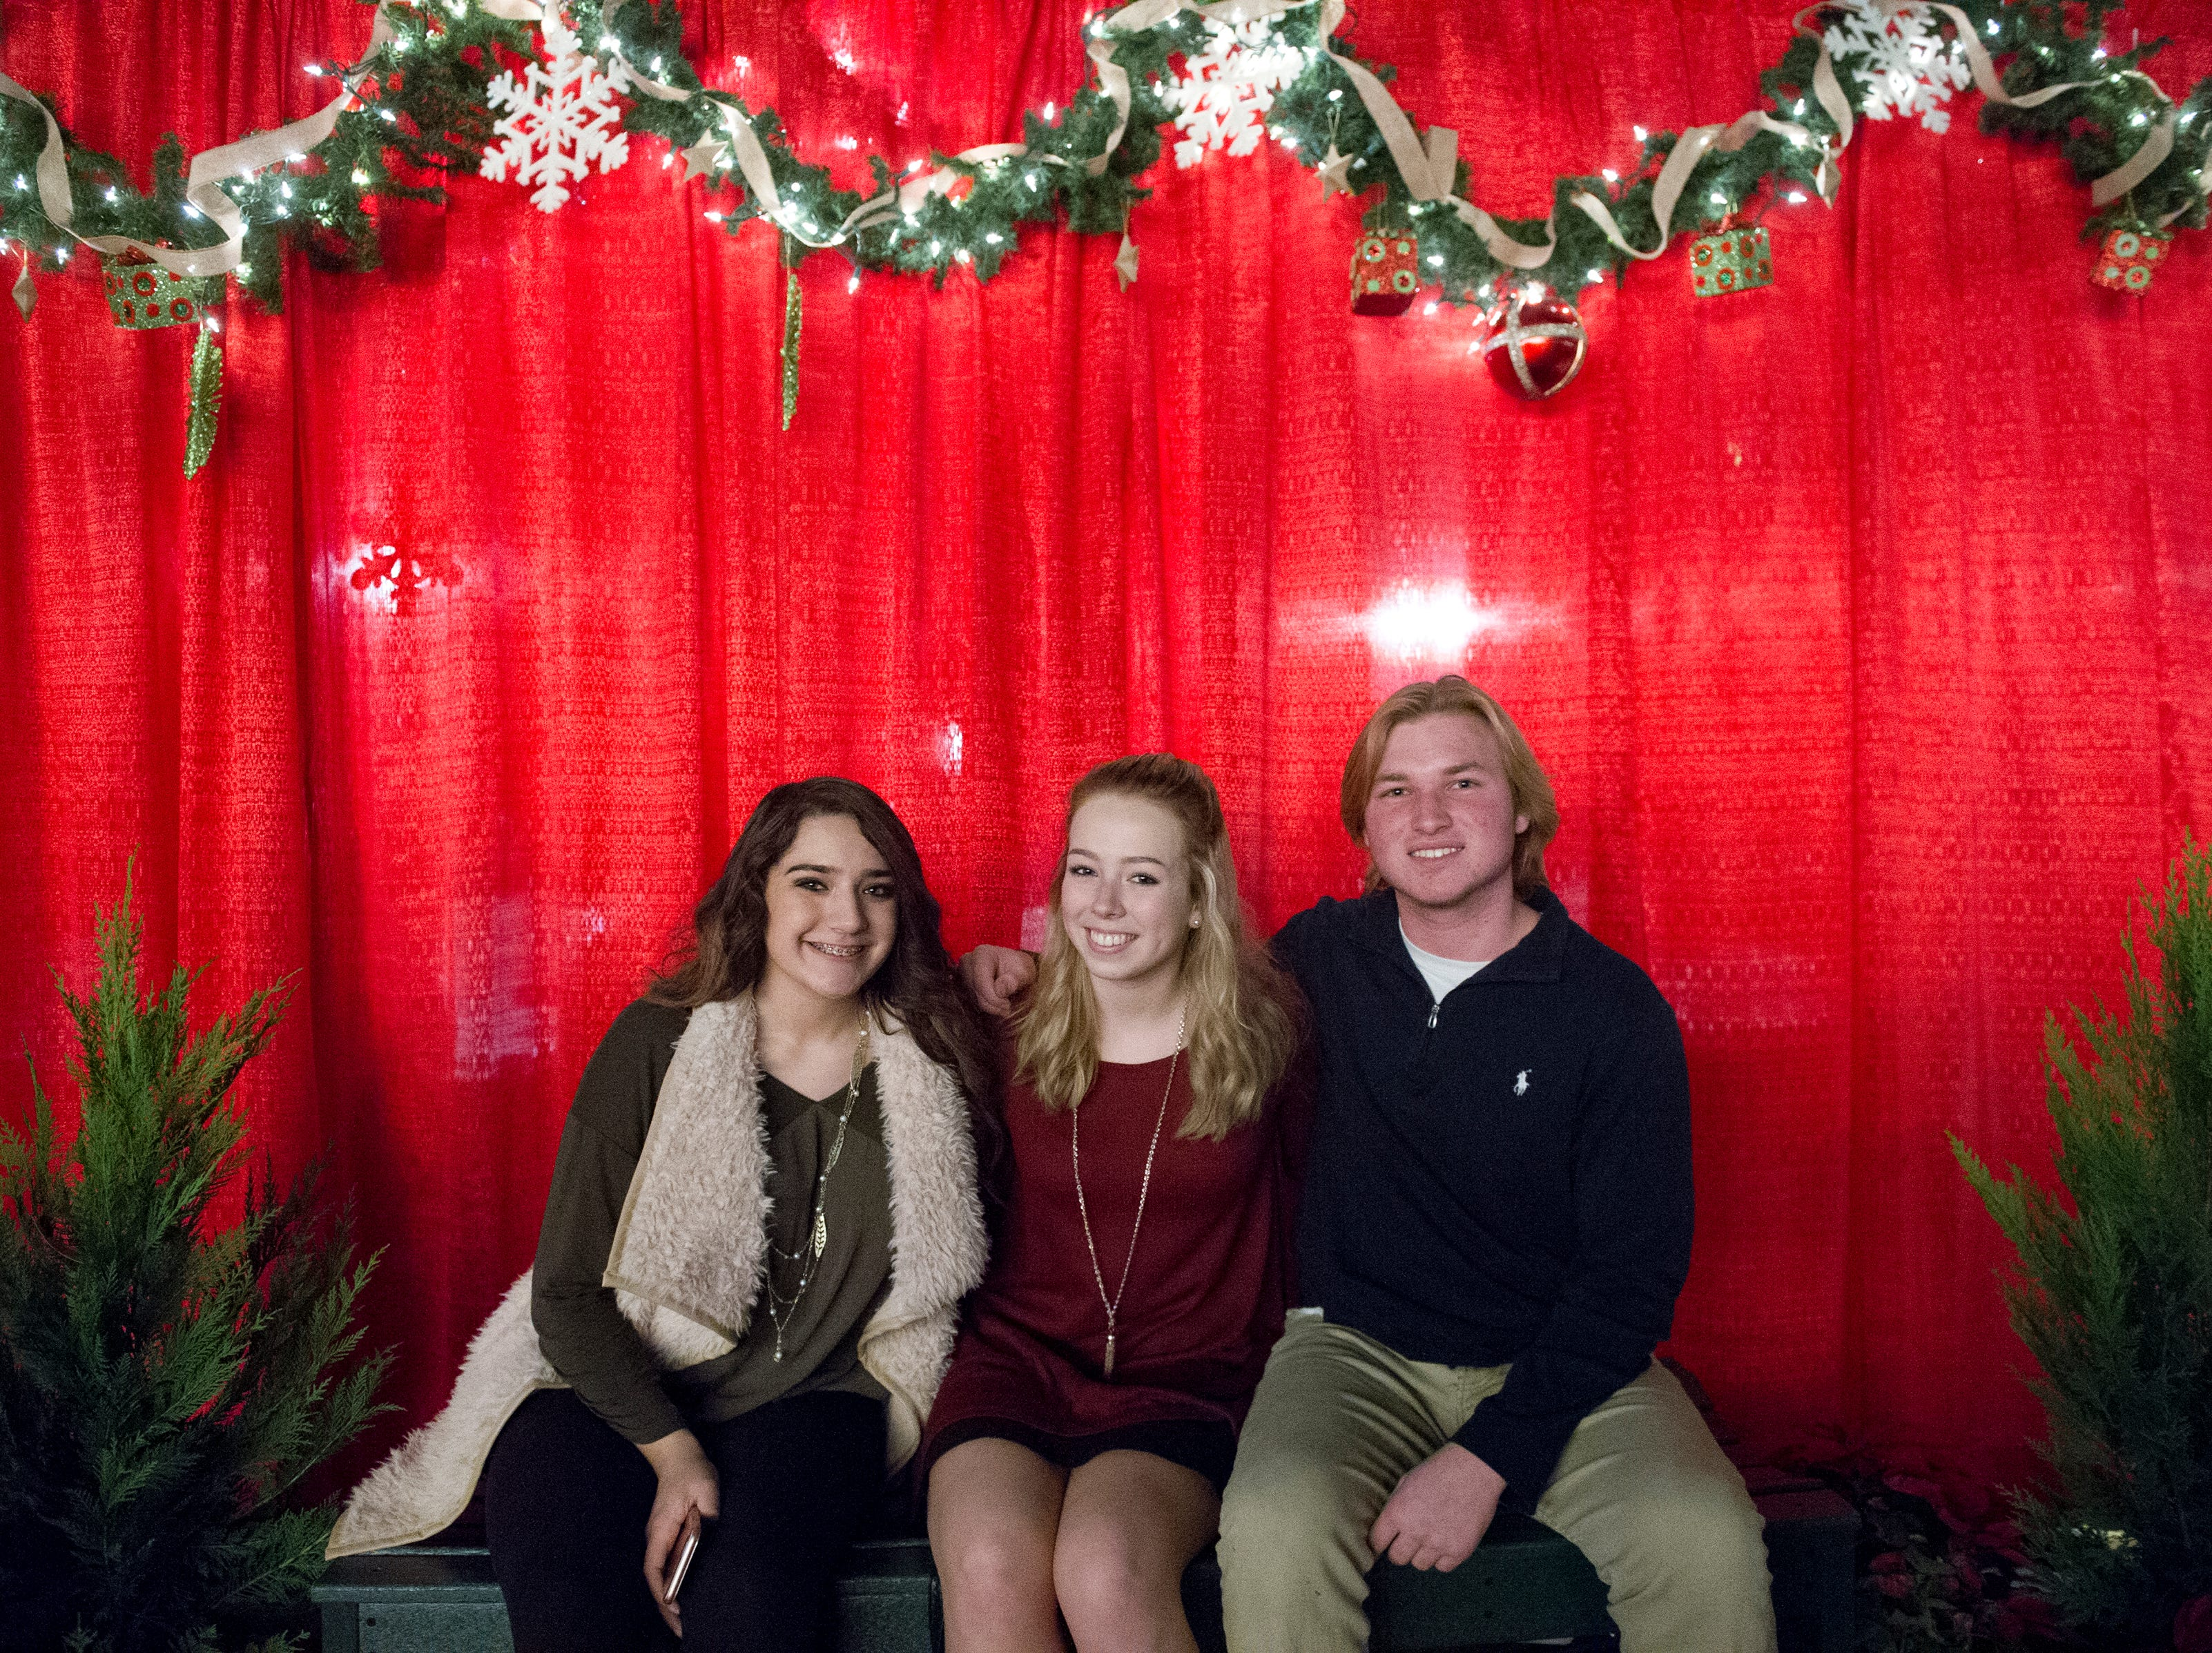 Isabella Saravi (from left), Olivia Clevenger, and Tristan MacFawn all of Knoxville pose for a photo during the Fantasy of Trees at the Knoxville Convention Center Wednesday, Nov. 25, 2015. (JESSICA TEZAK/NEWS SENTINEL)